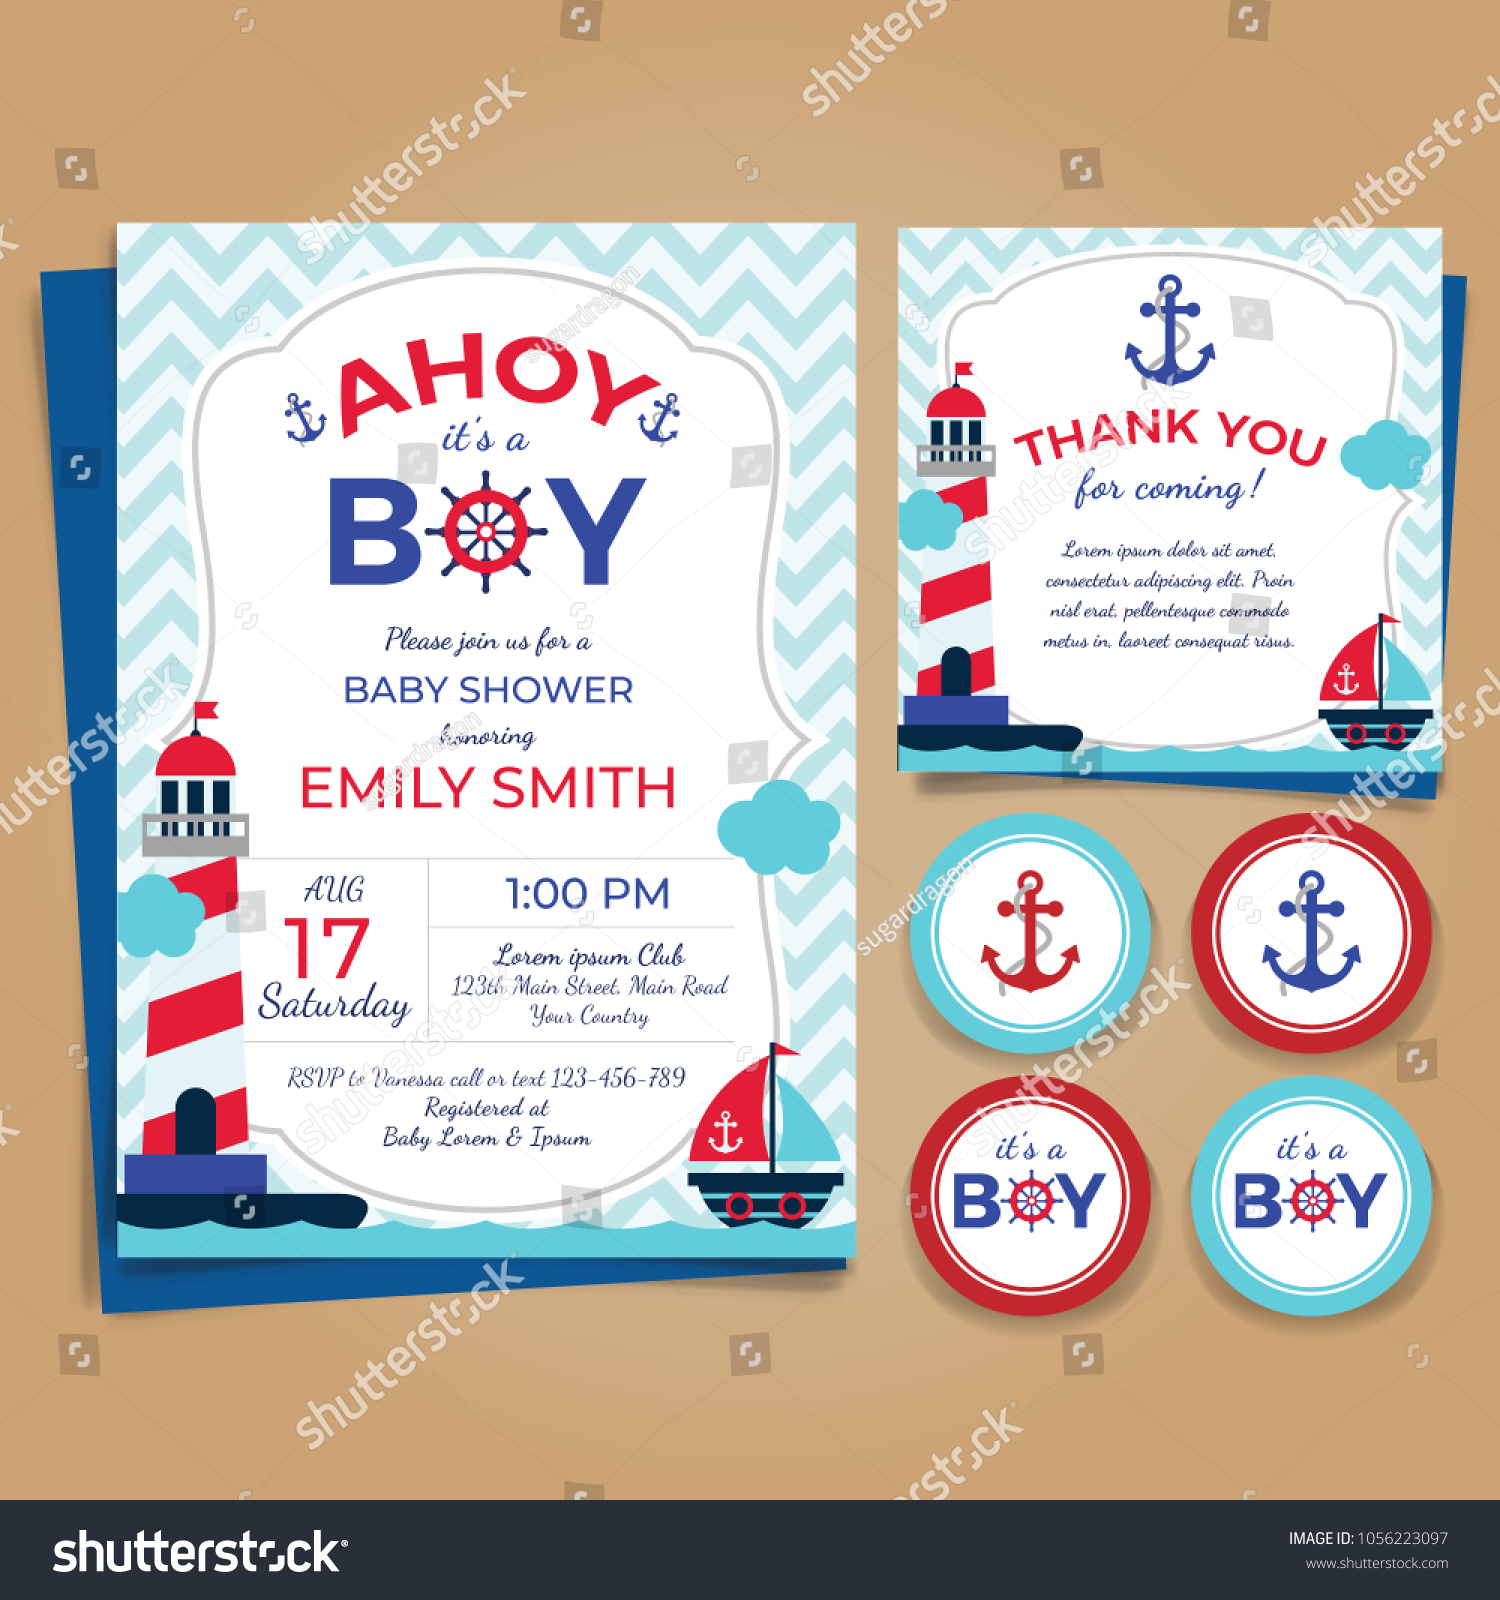 Nautical Theme Baby Shower Invitation Birthday Stock Vector ...